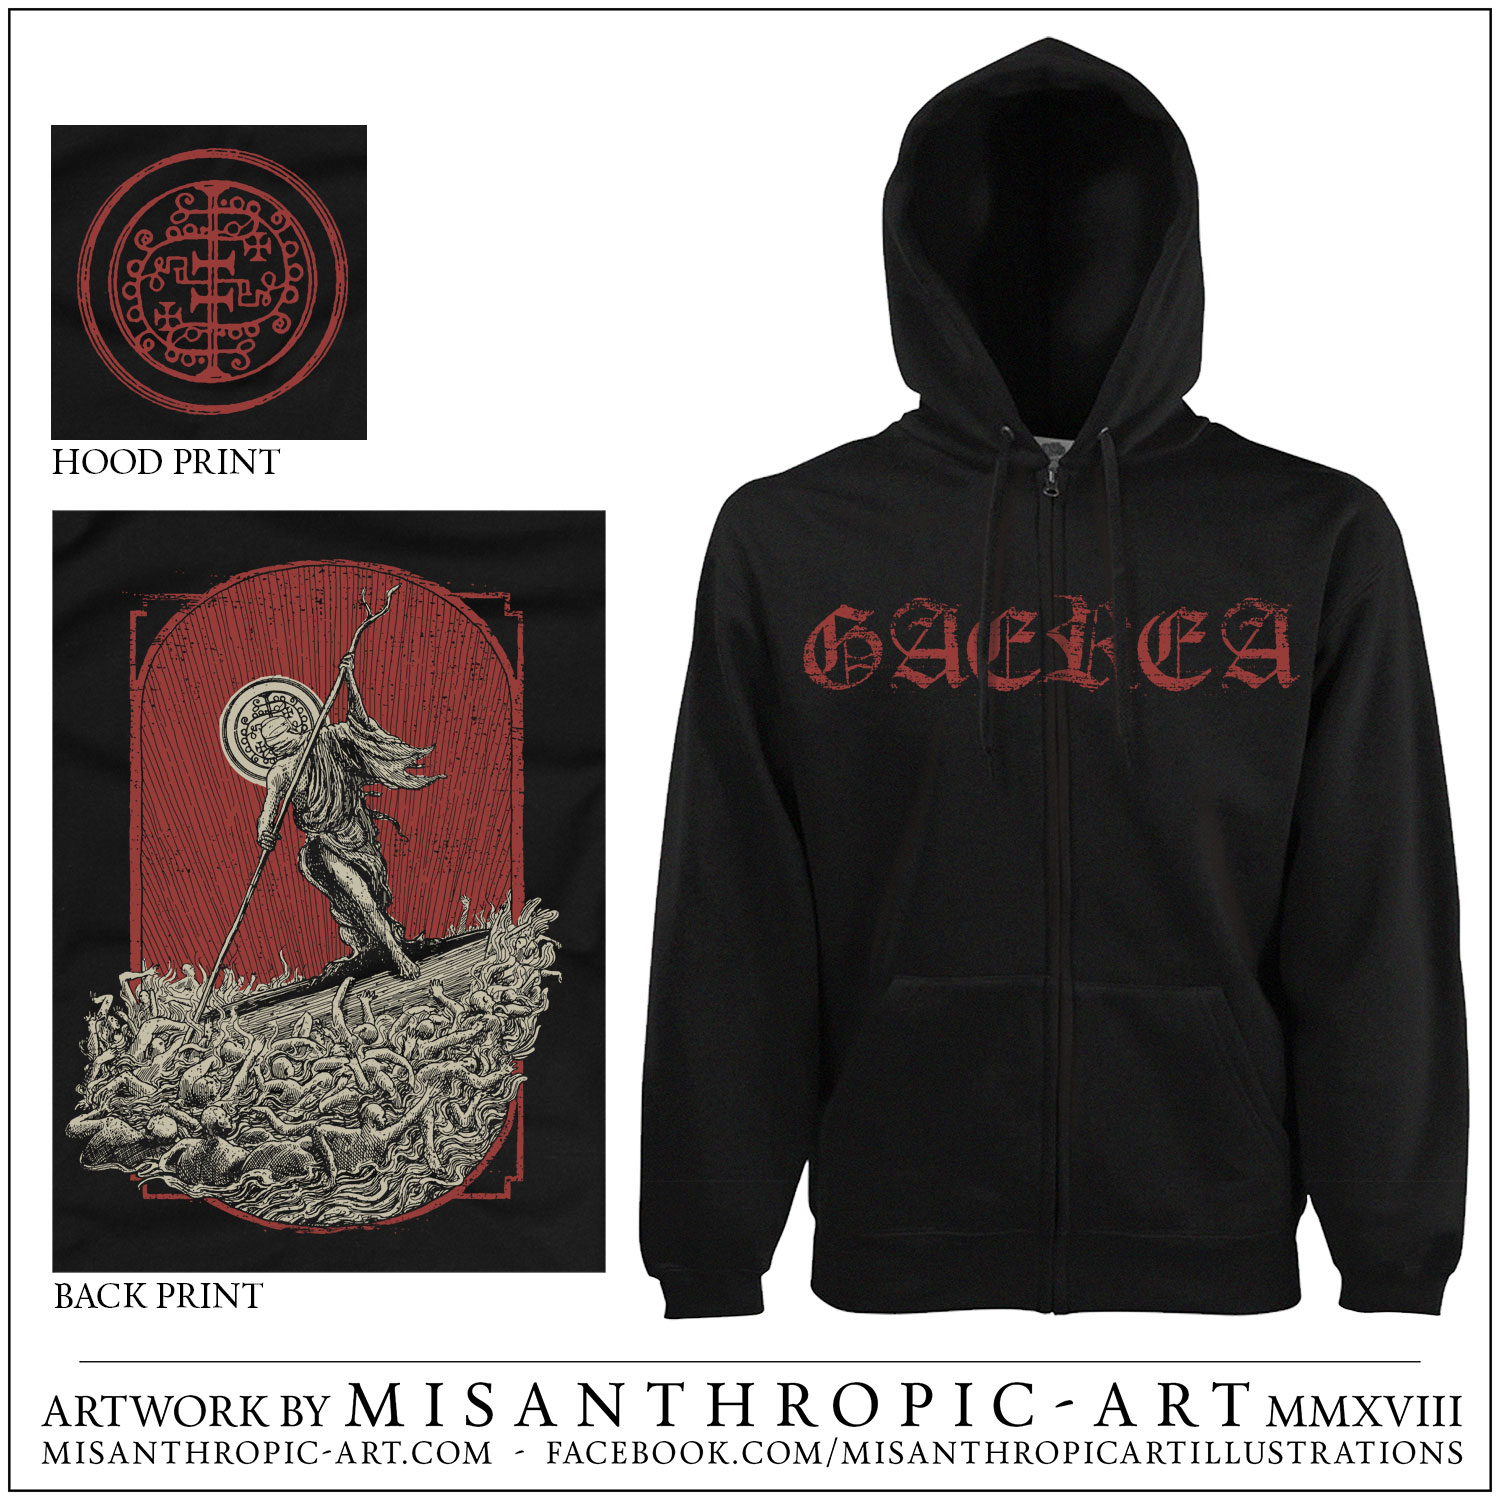 GAEREA (Portugal) - 'Unsettling Whispers' Zipped Hoodies (Gildan Size) with Hood Print